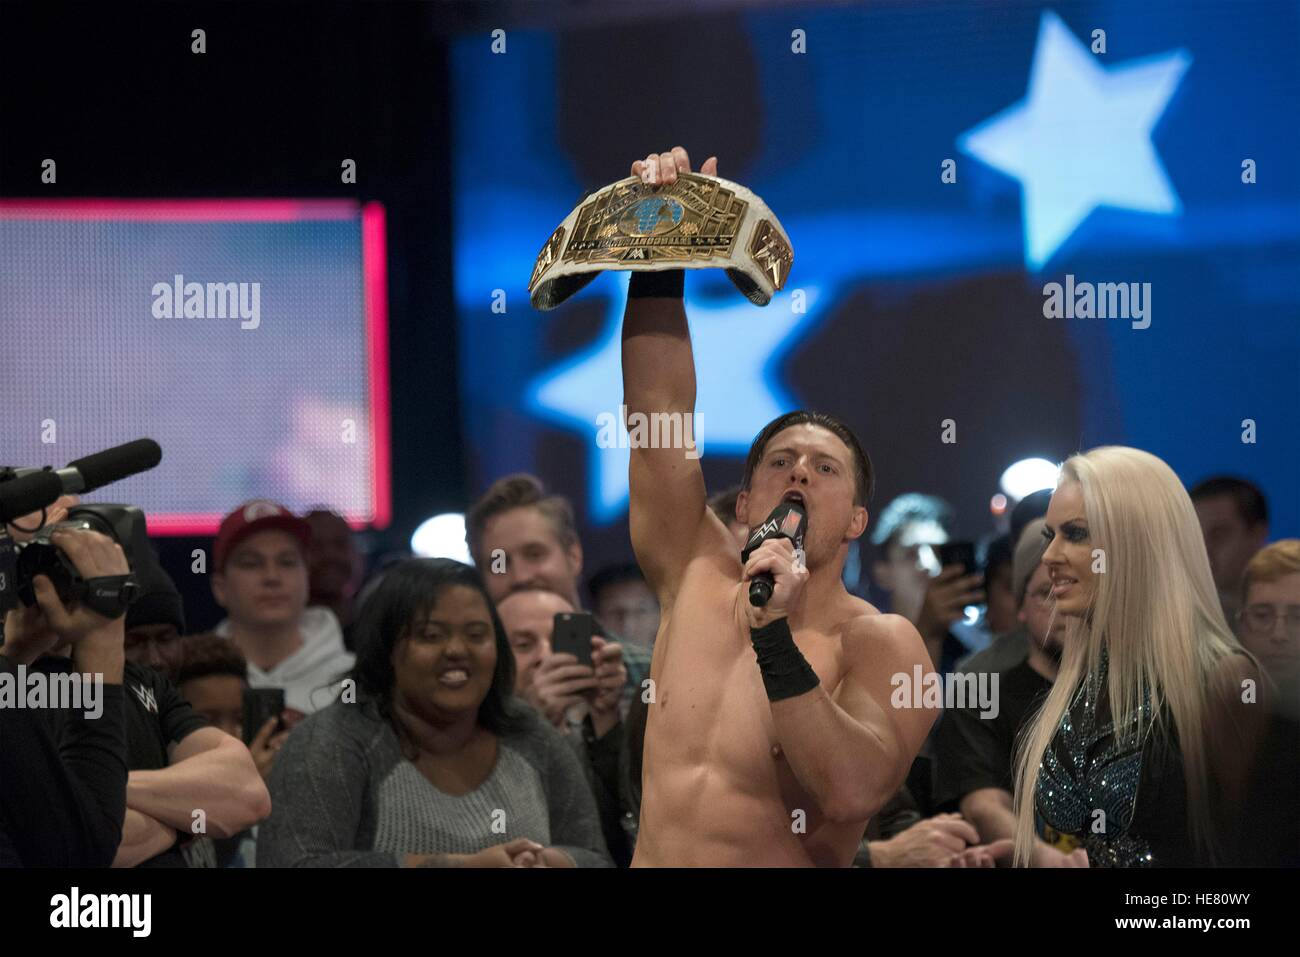 WWE performer The Miz holds up a championship belt after a wrestling match for the 14th Annual Tribute to the Troops - Stock Image